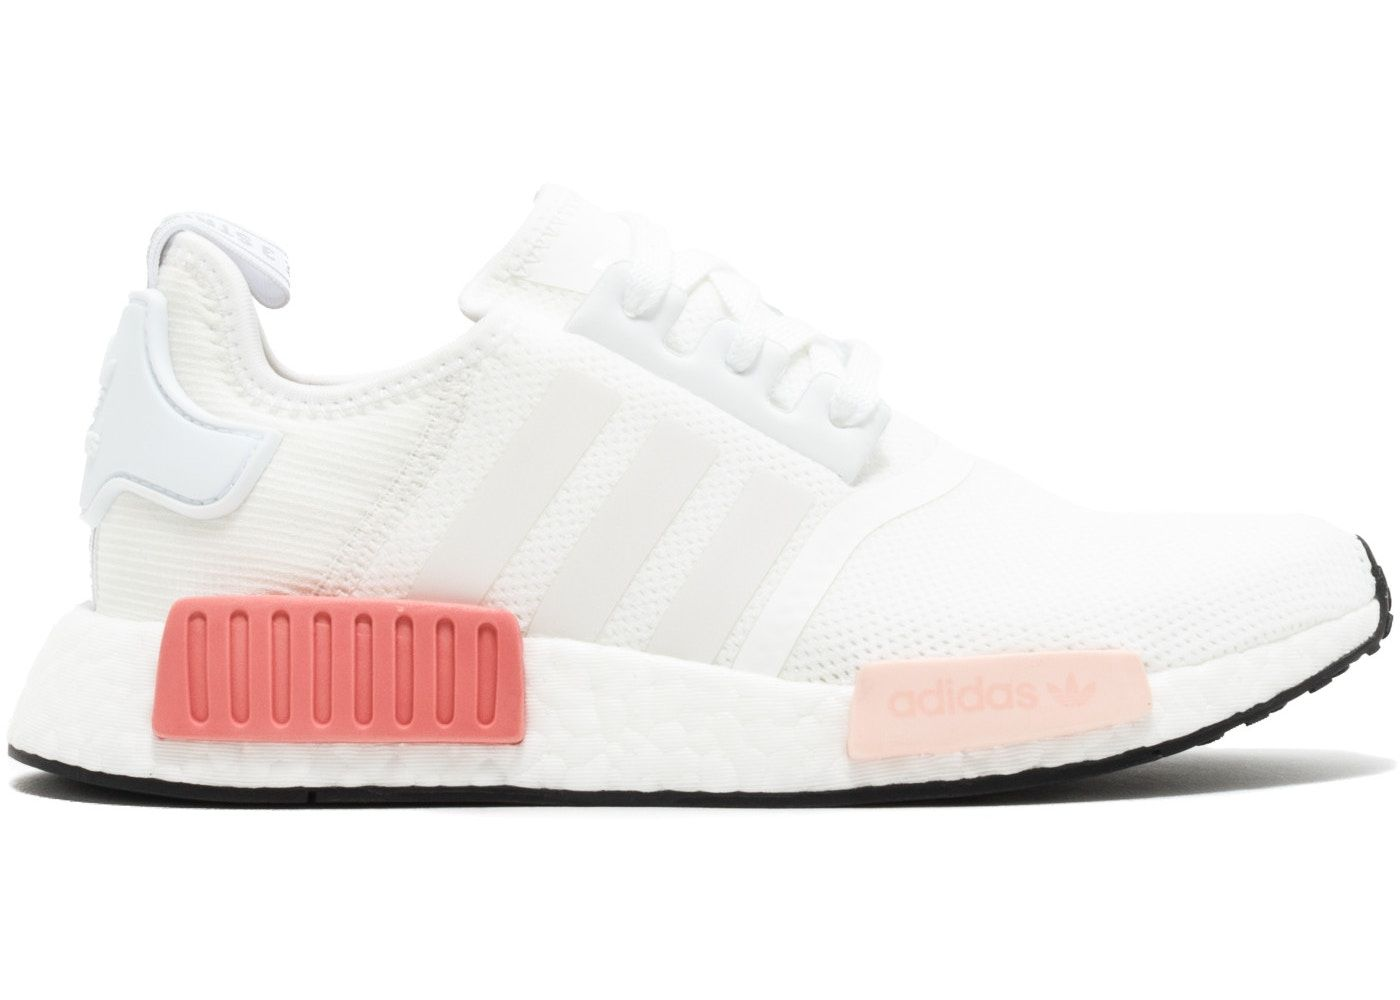 adidas NMD R1 White Rose (W) in 2021 | Adidas shoes women, Adidas ...